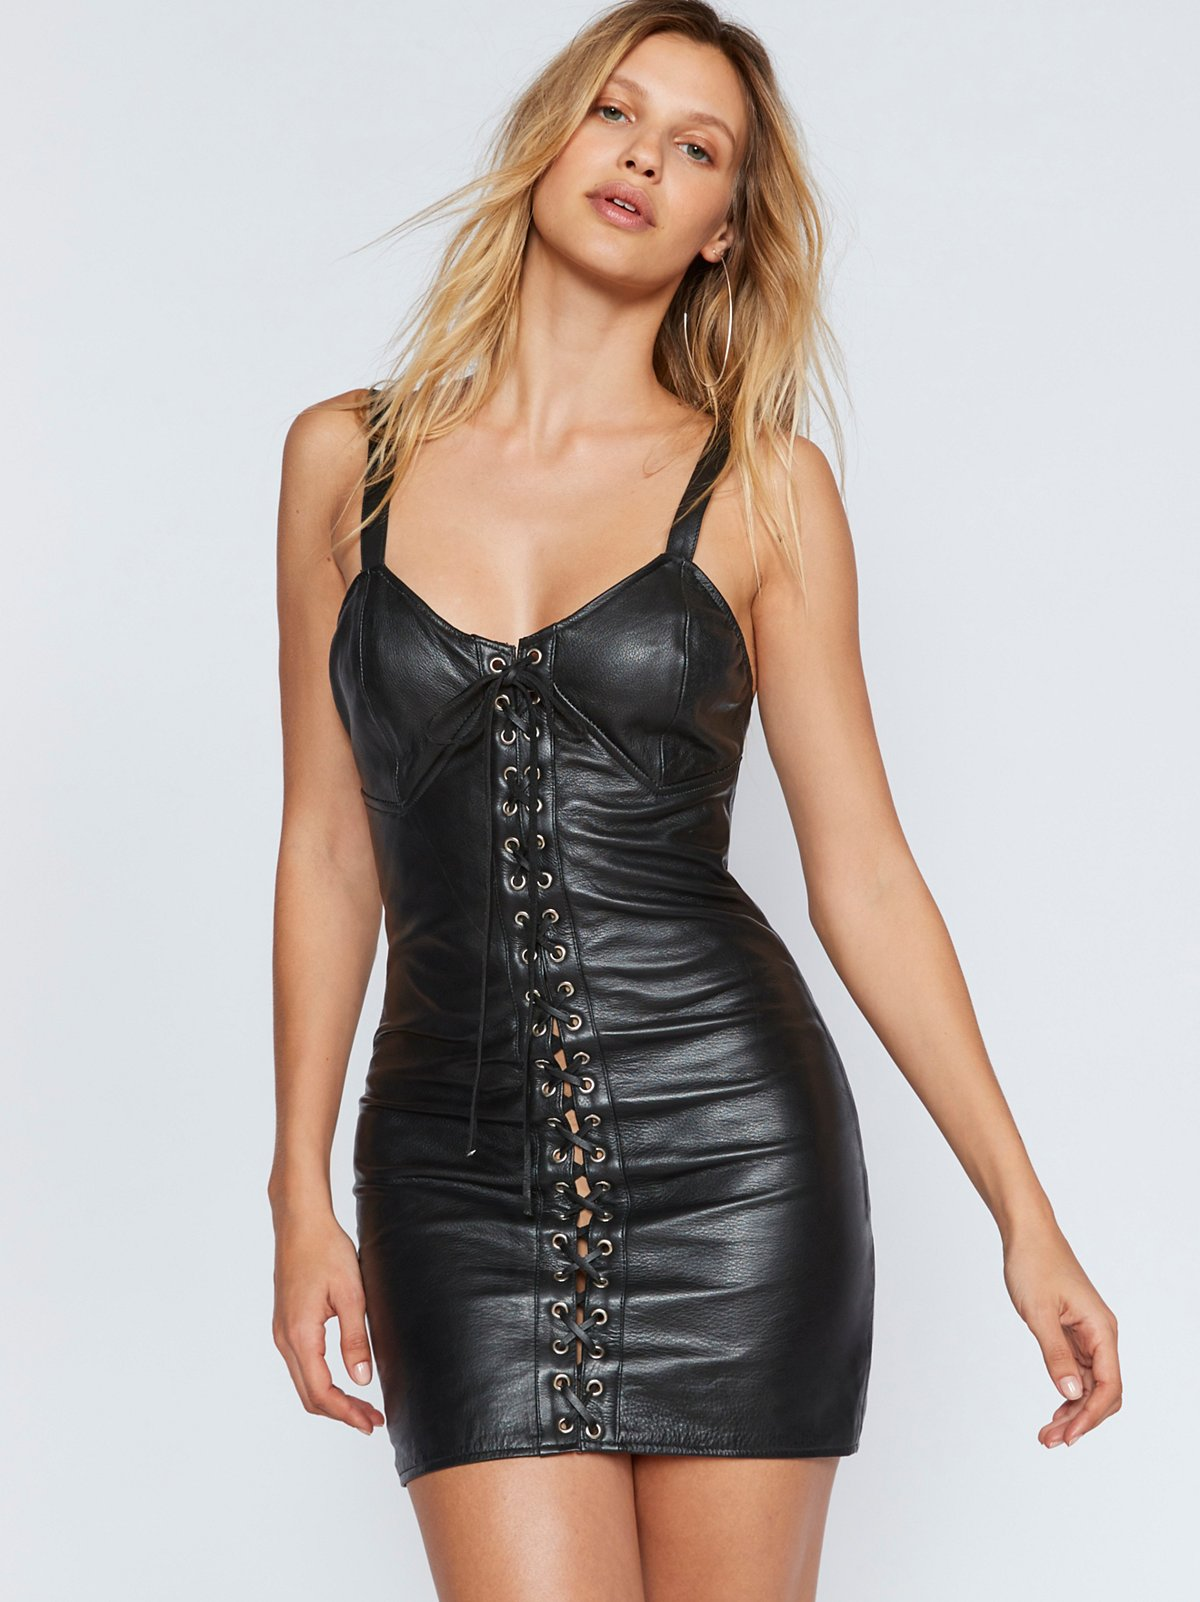 CIty Slicker Leather MIni Dress